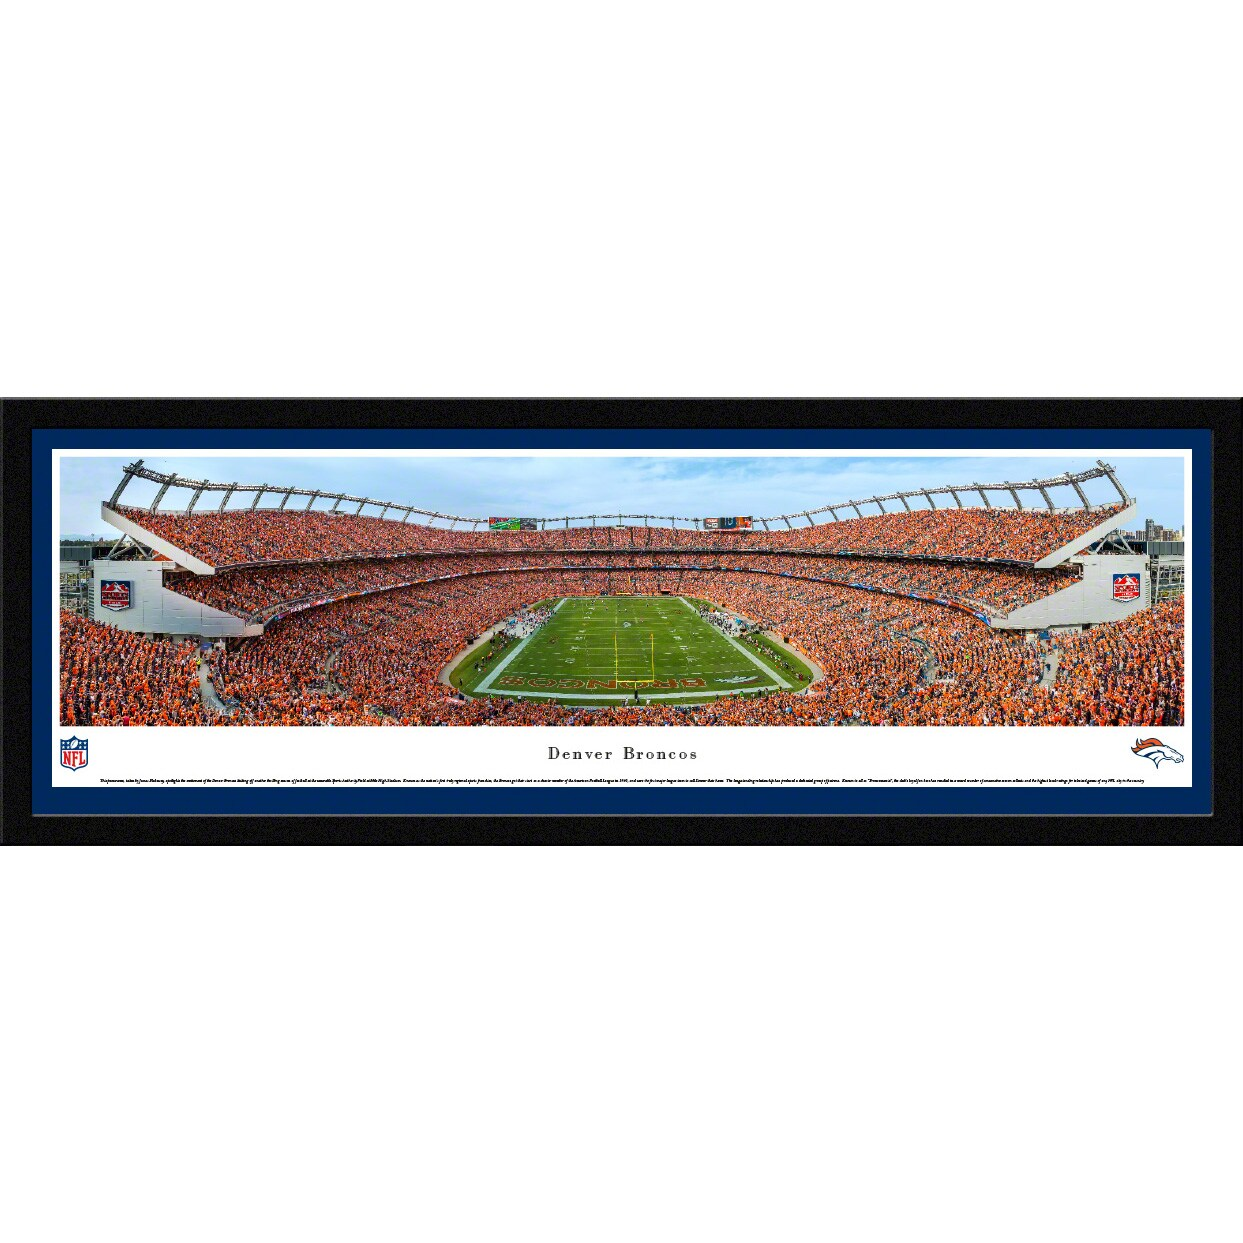 "Denver Broncos 16"" x 42"" Select Frame Stadium Panoramic Photo"